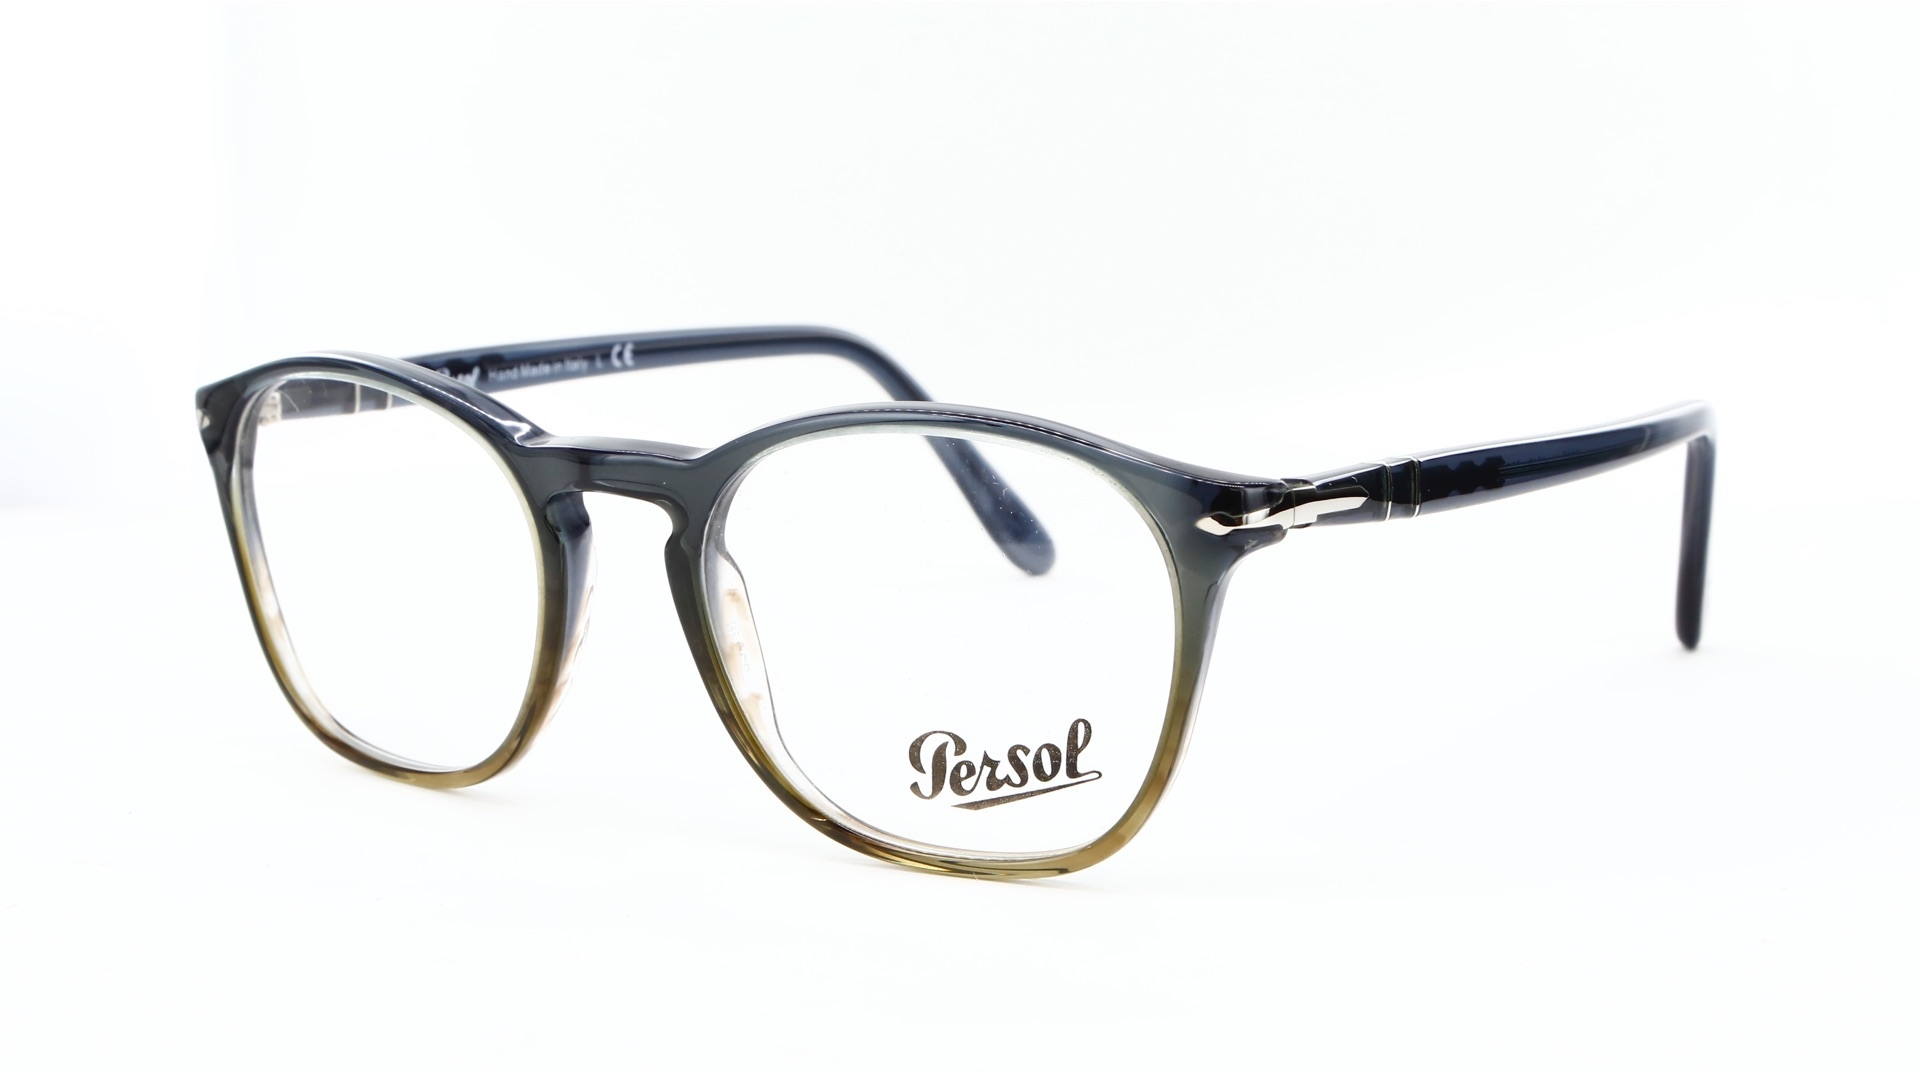 Persol - ref: 80788